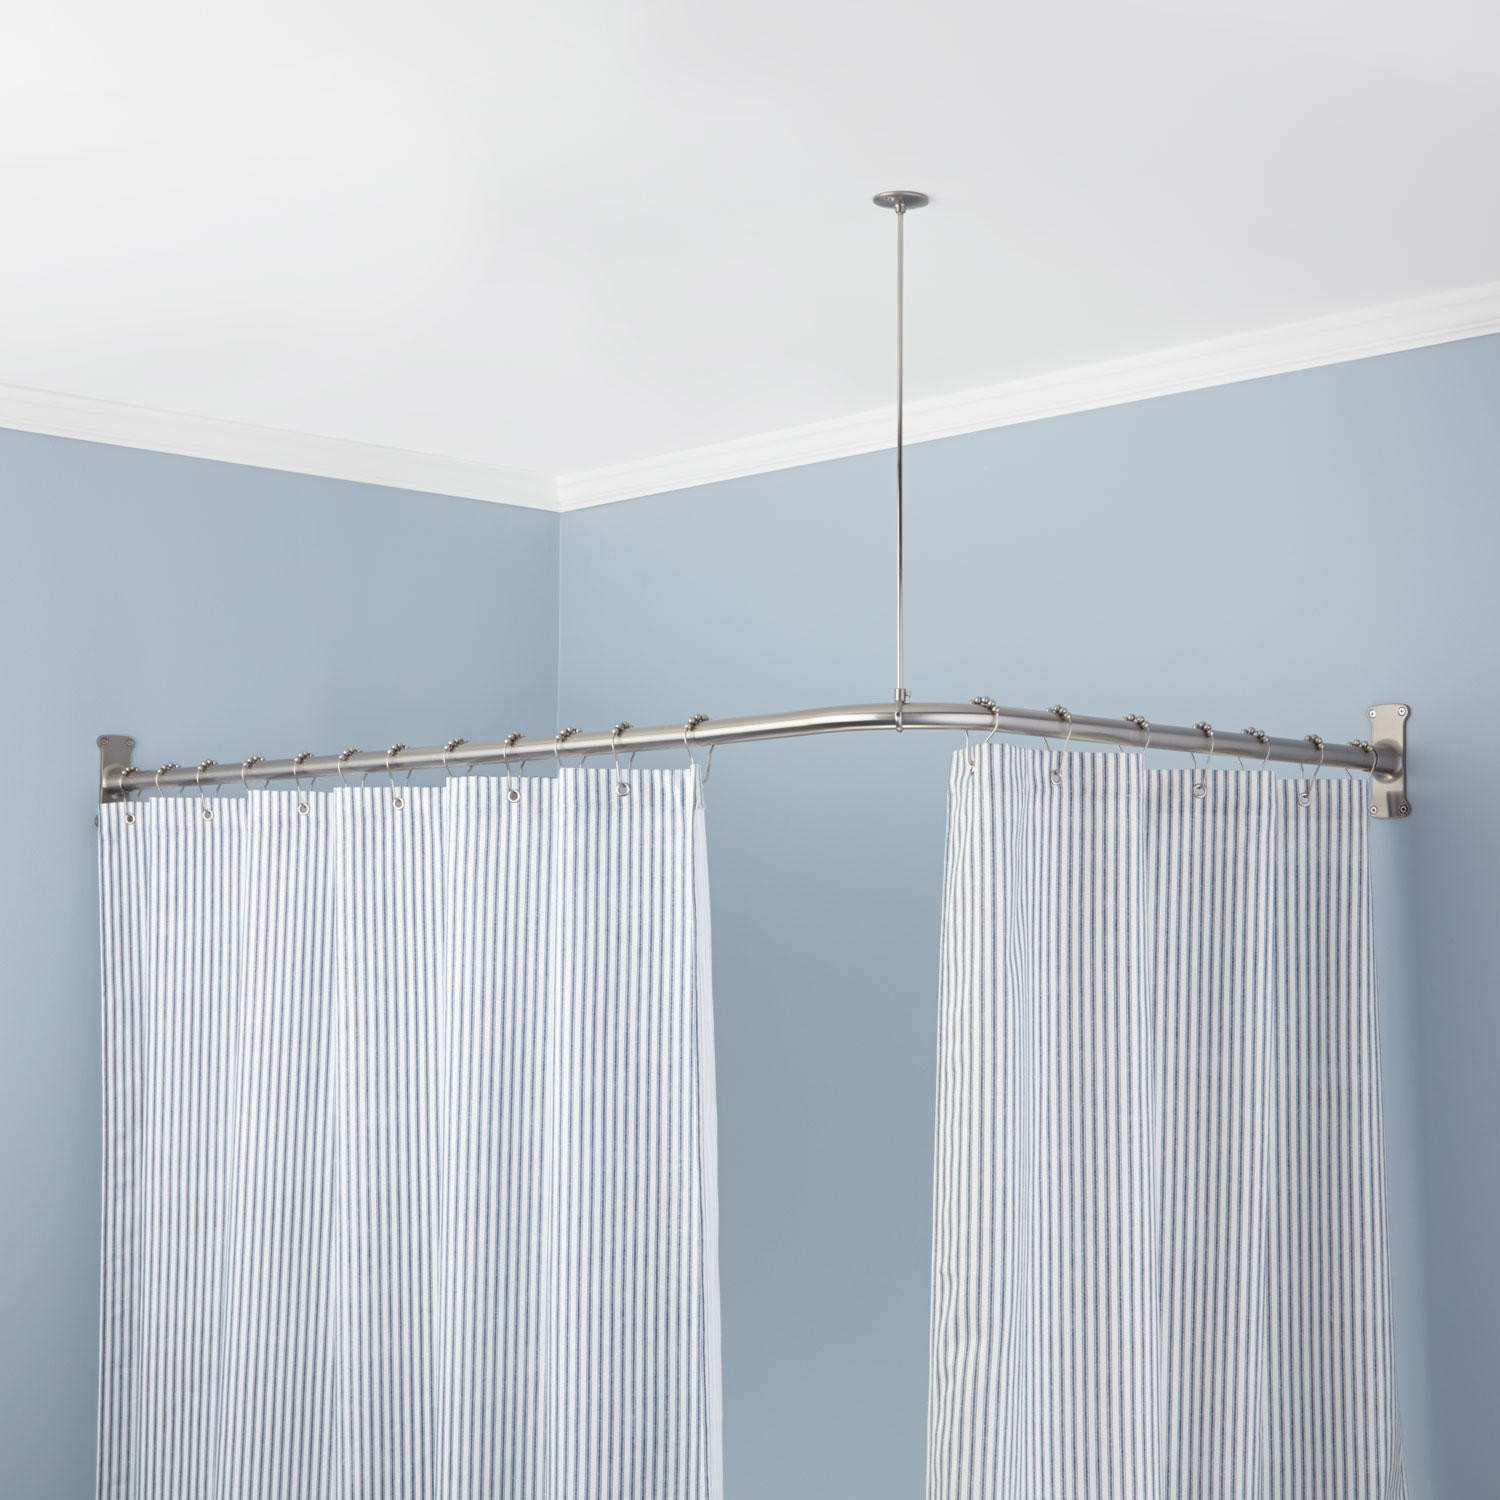 Delightful Decoration Shower Stall Curtain Rod Pleasant Idea for proportions 1500 X 1500